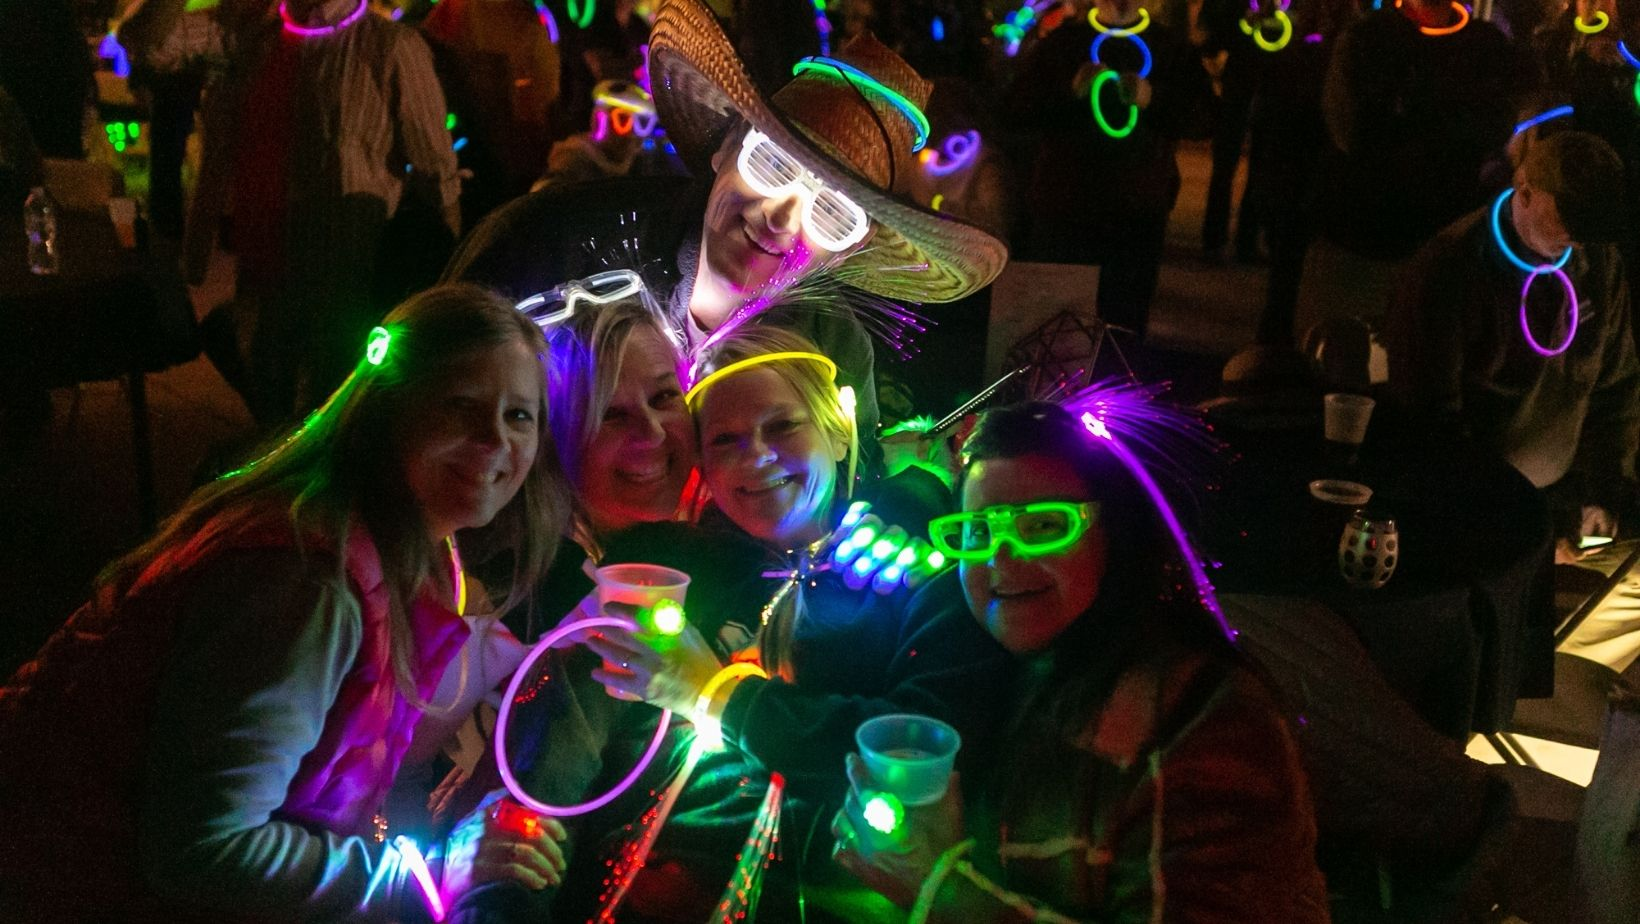 Attendees gather for a photo during Neon Night at an Xscapers Convergence